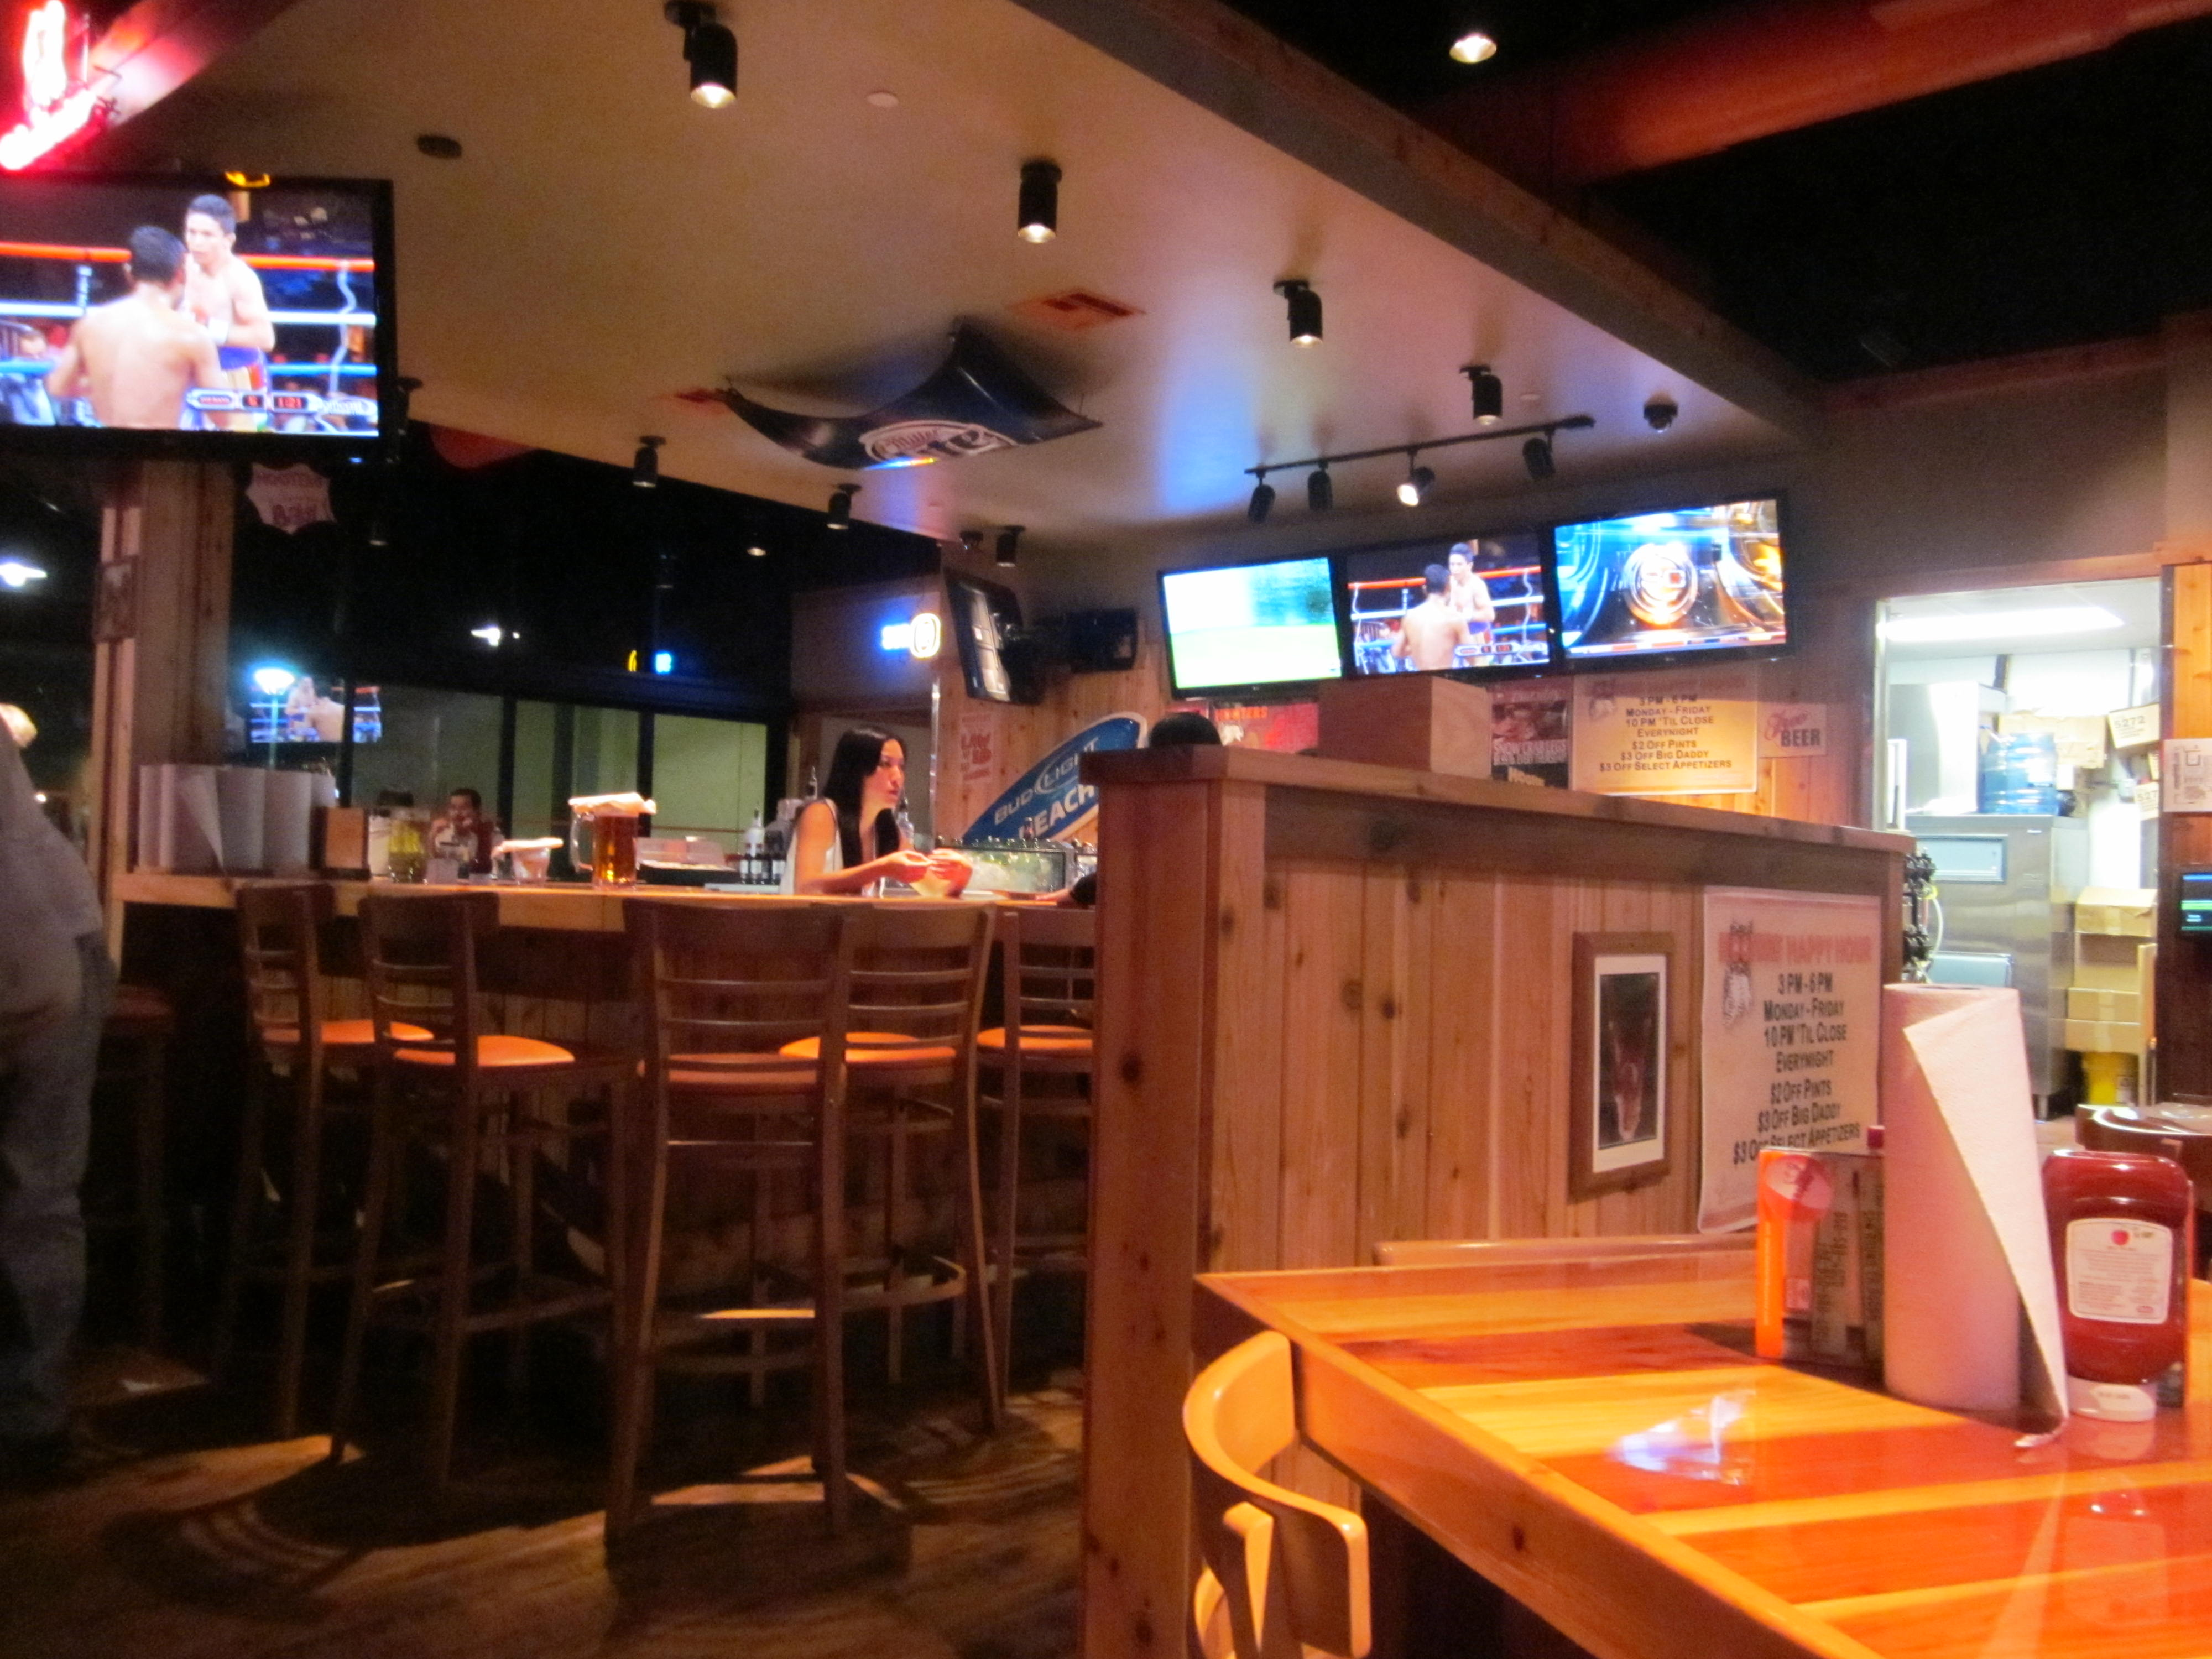 Hooters restaurant interior pixshark images